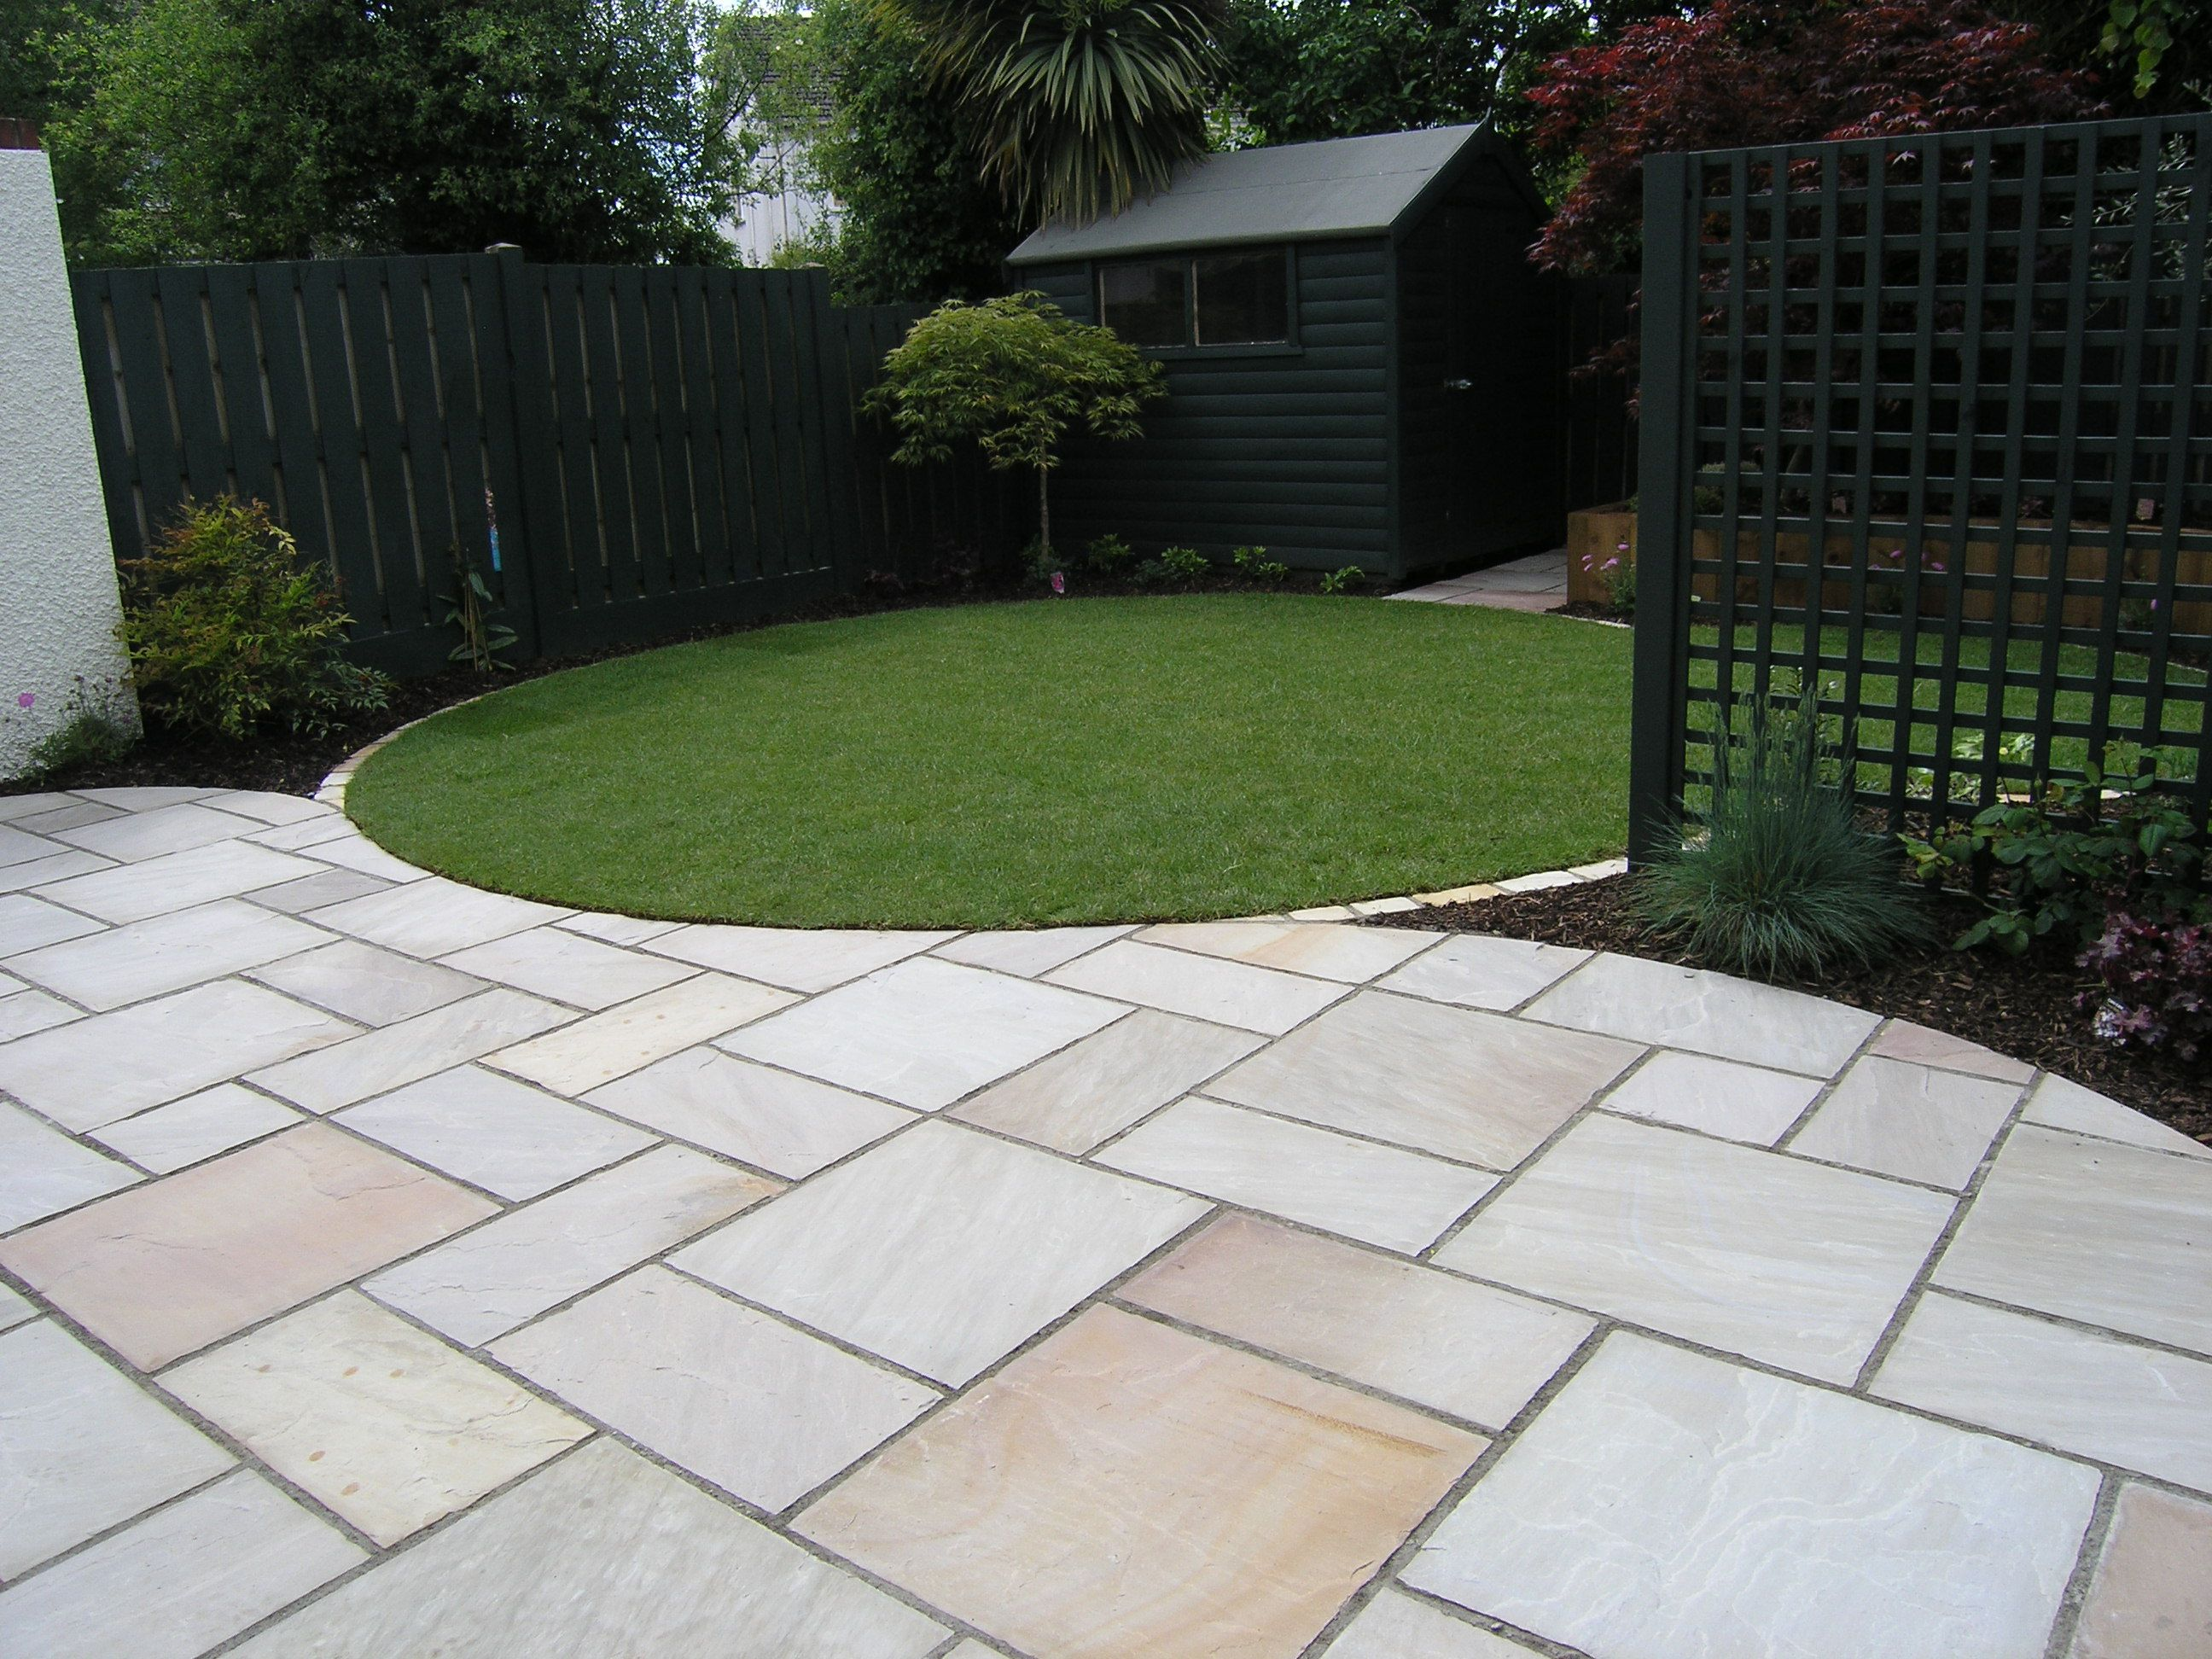 Patio Layout Designs Garden Paving 2 House Garden Paving Garden Design Garden